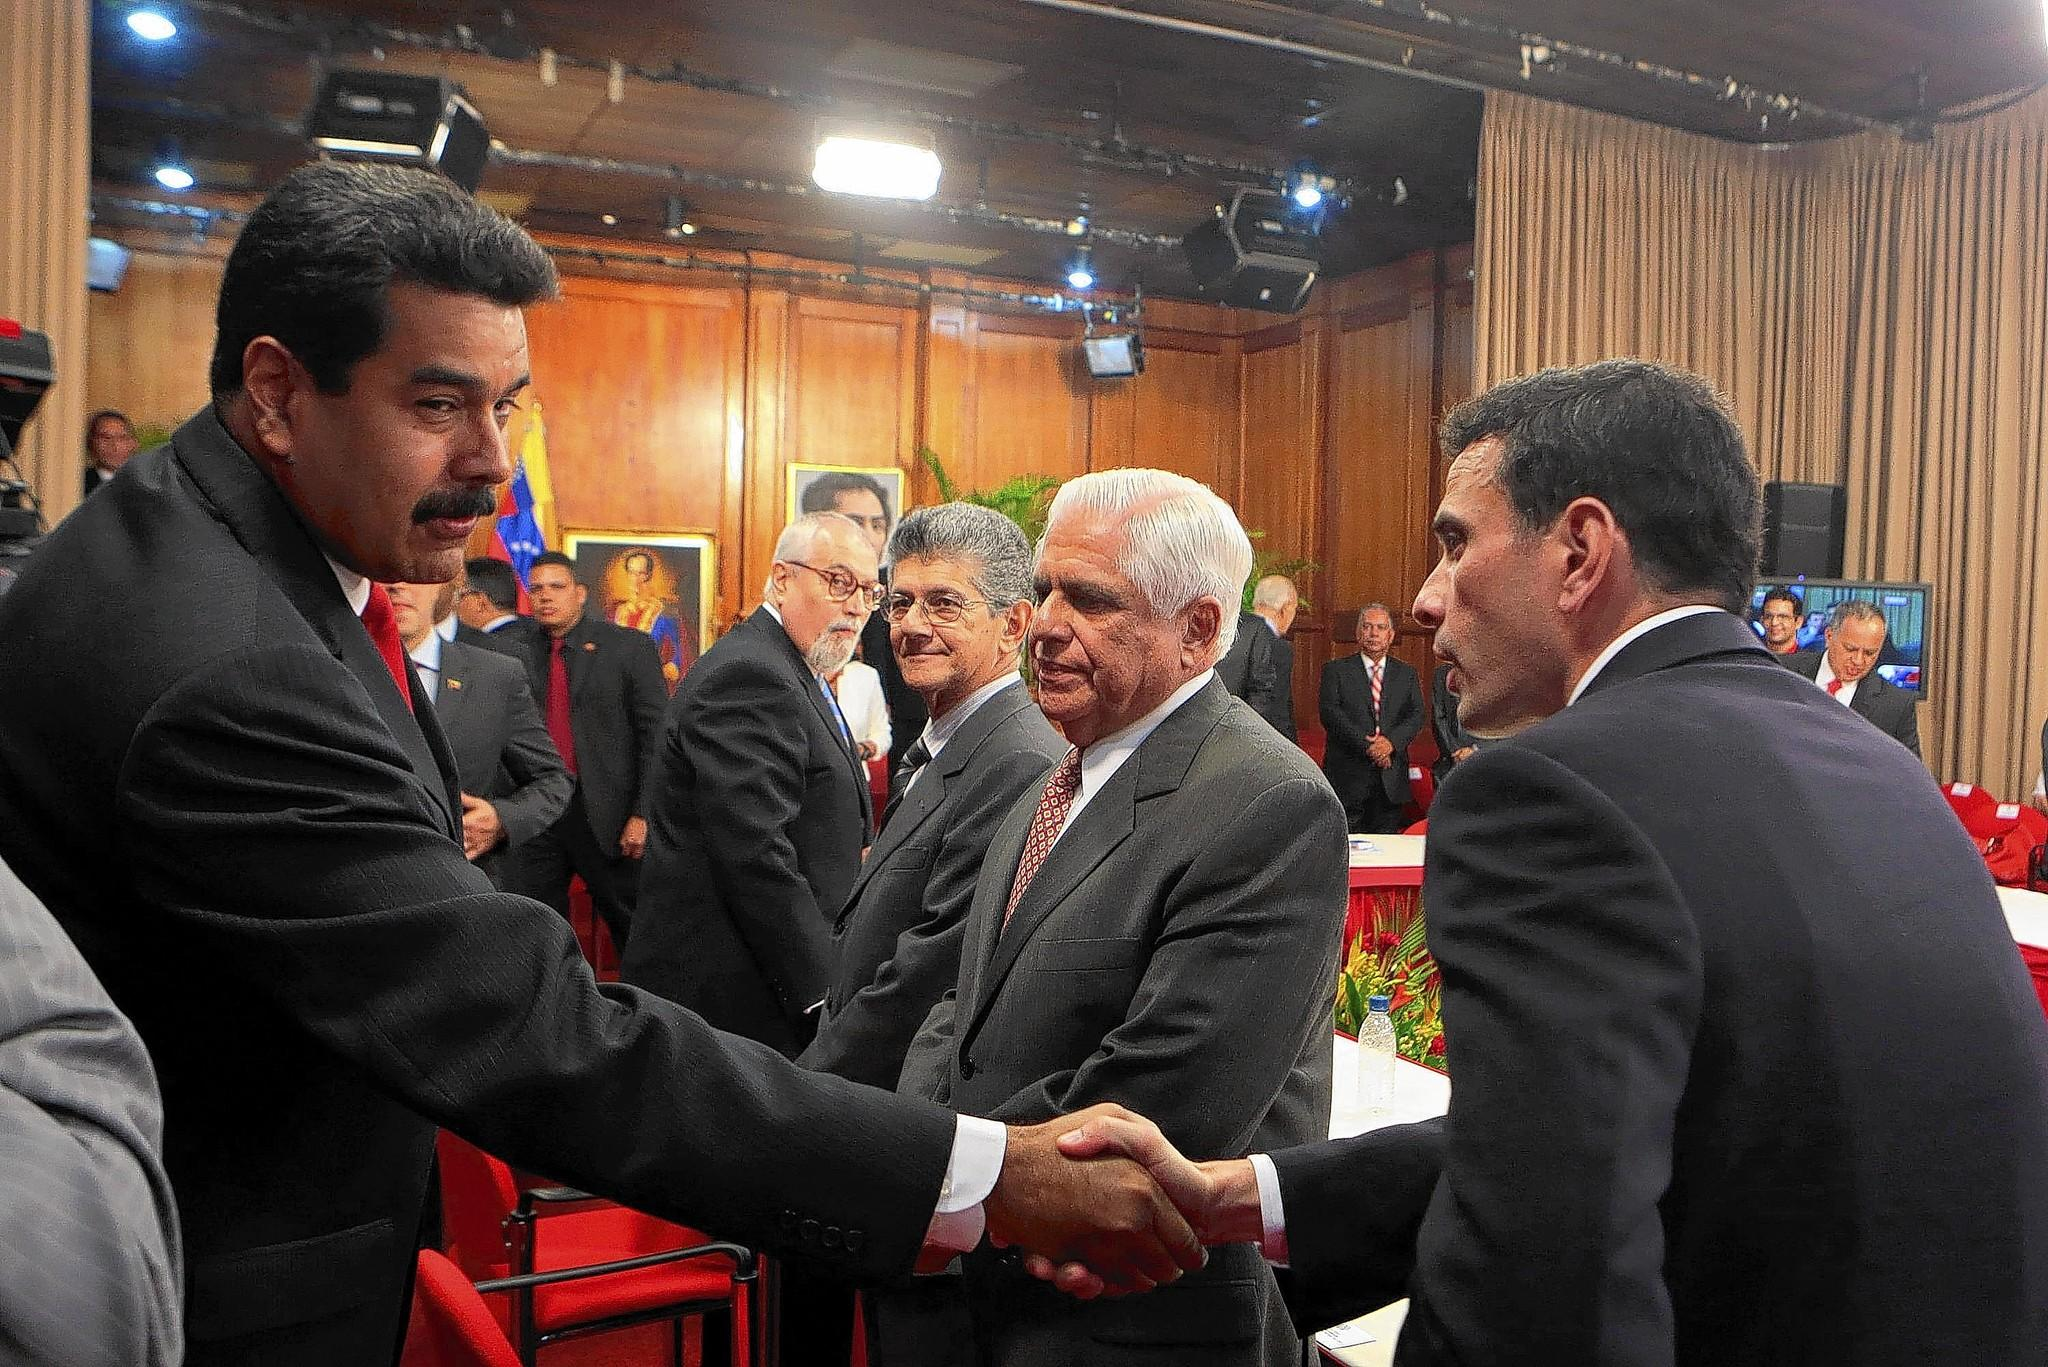 Venezuelan President Nicolas Maduro, left, greets opposition leader Henrique Capriles before a meeting at the Miraflores presidential palace in Caracas.